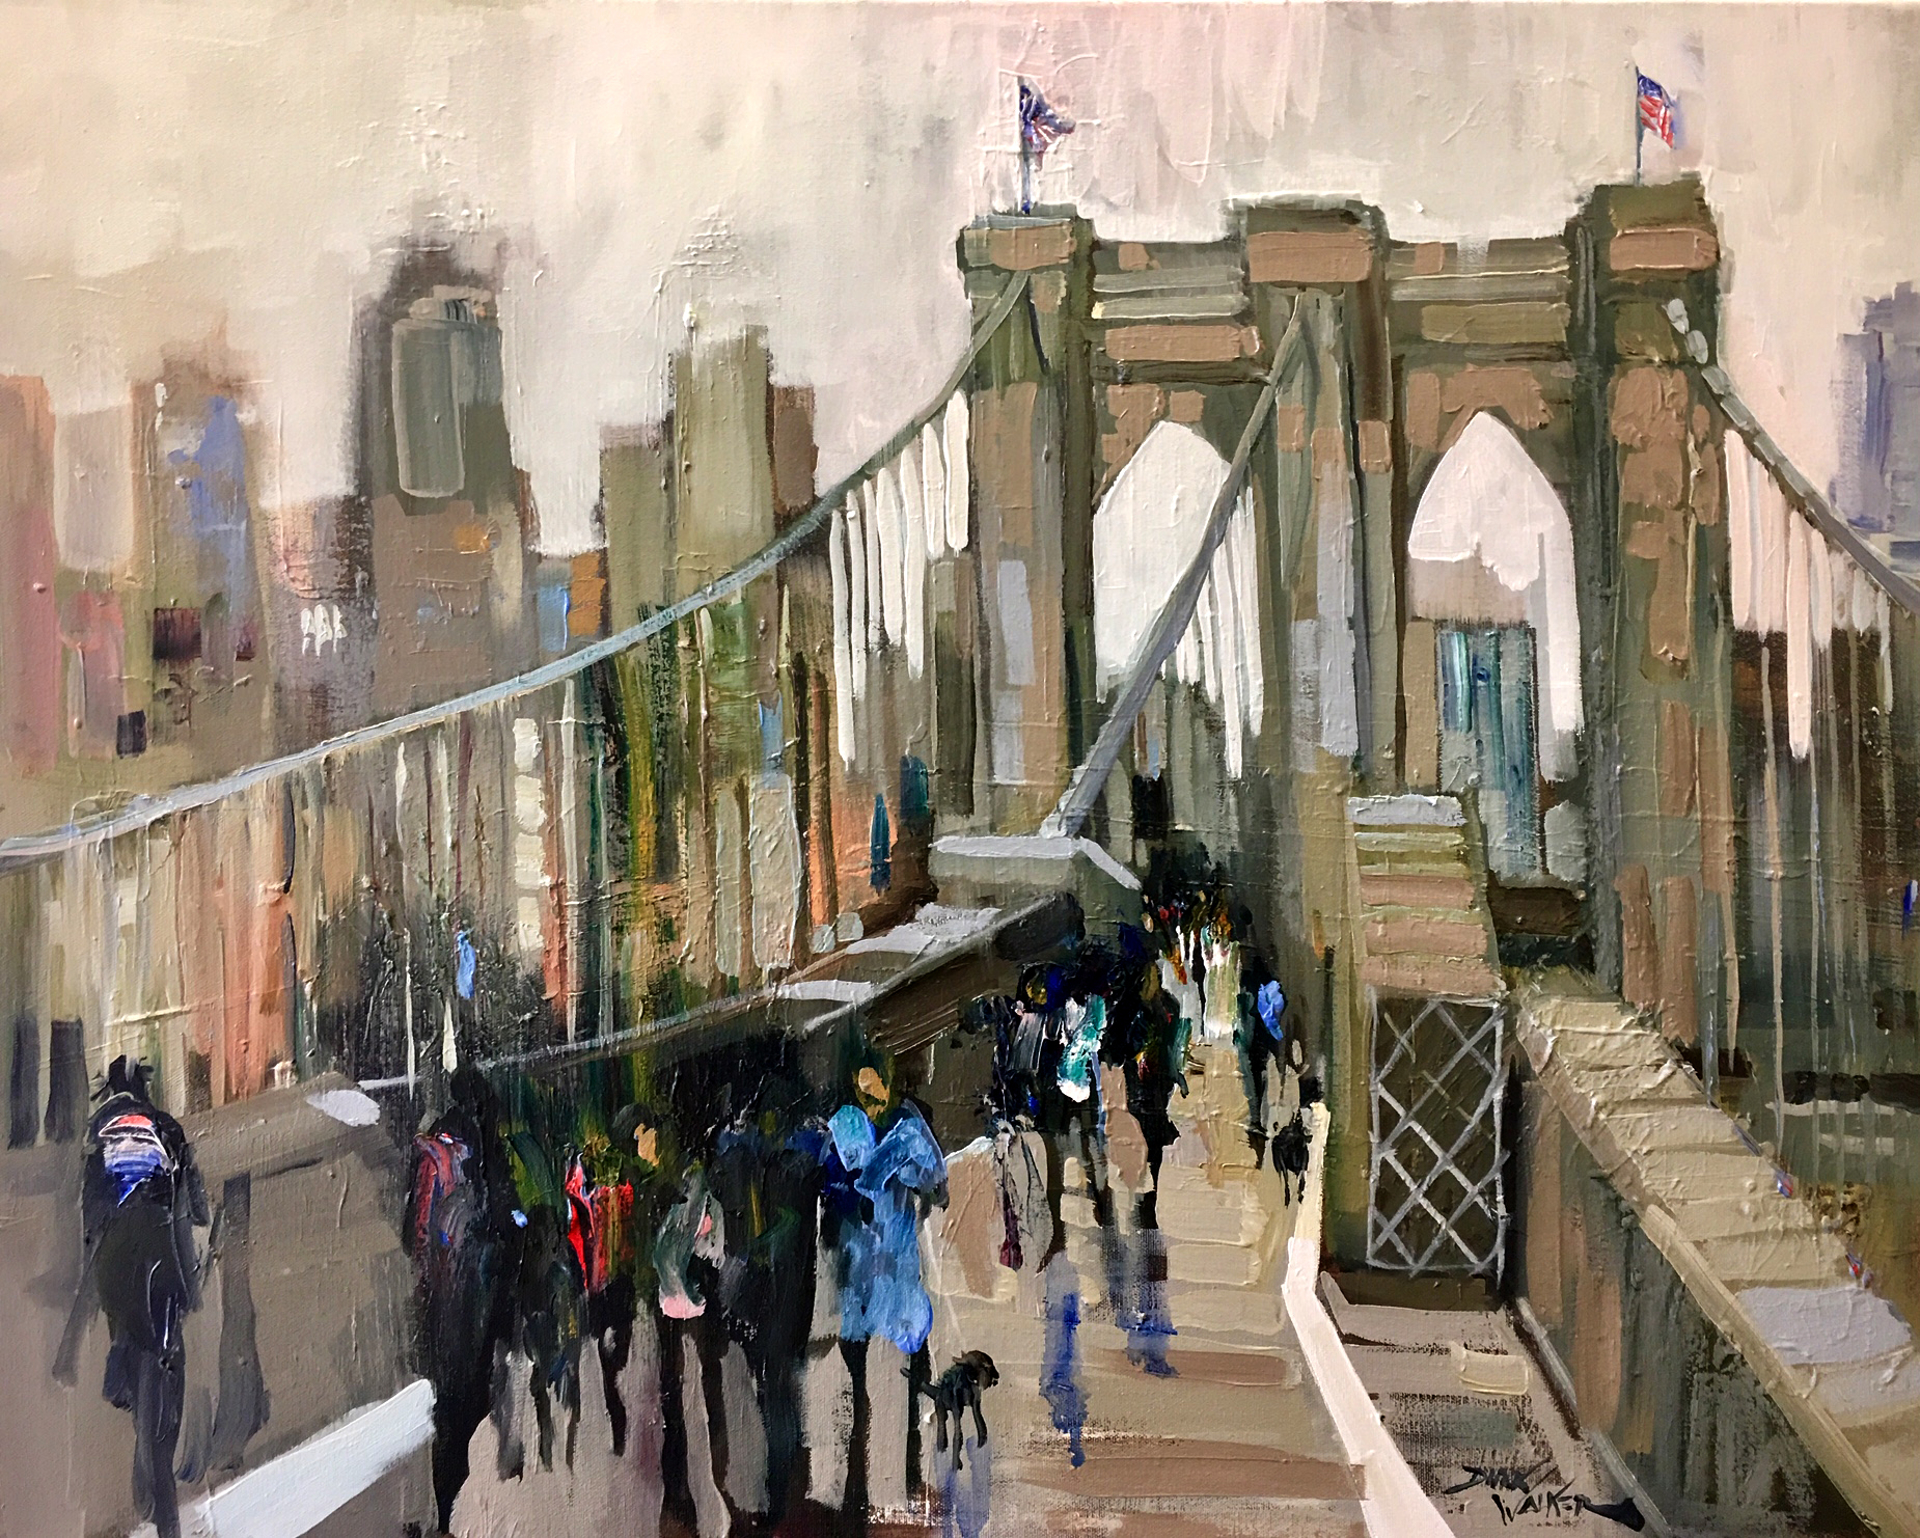 Wintry Day on the Brooklyn Bridge by Dirk Walker